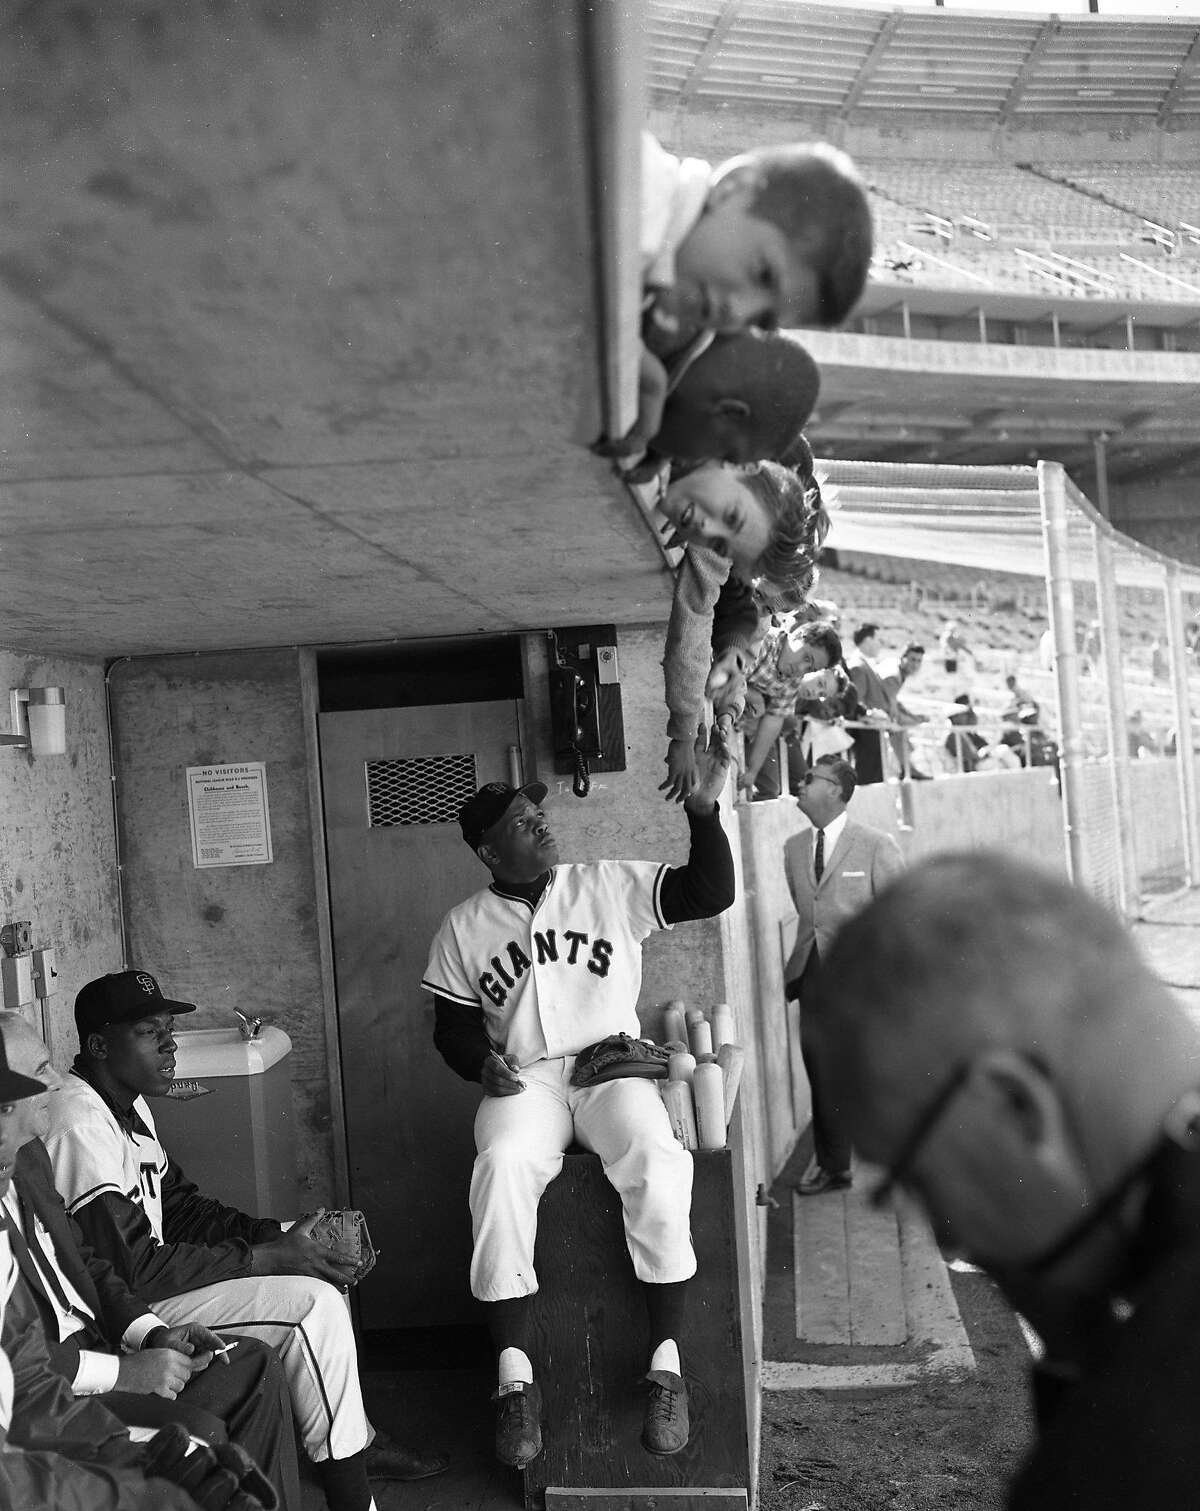 The Giants first workout at Candlestick Park, April 11, the day before Opening Day at Candlestick Park April 12, 1960.